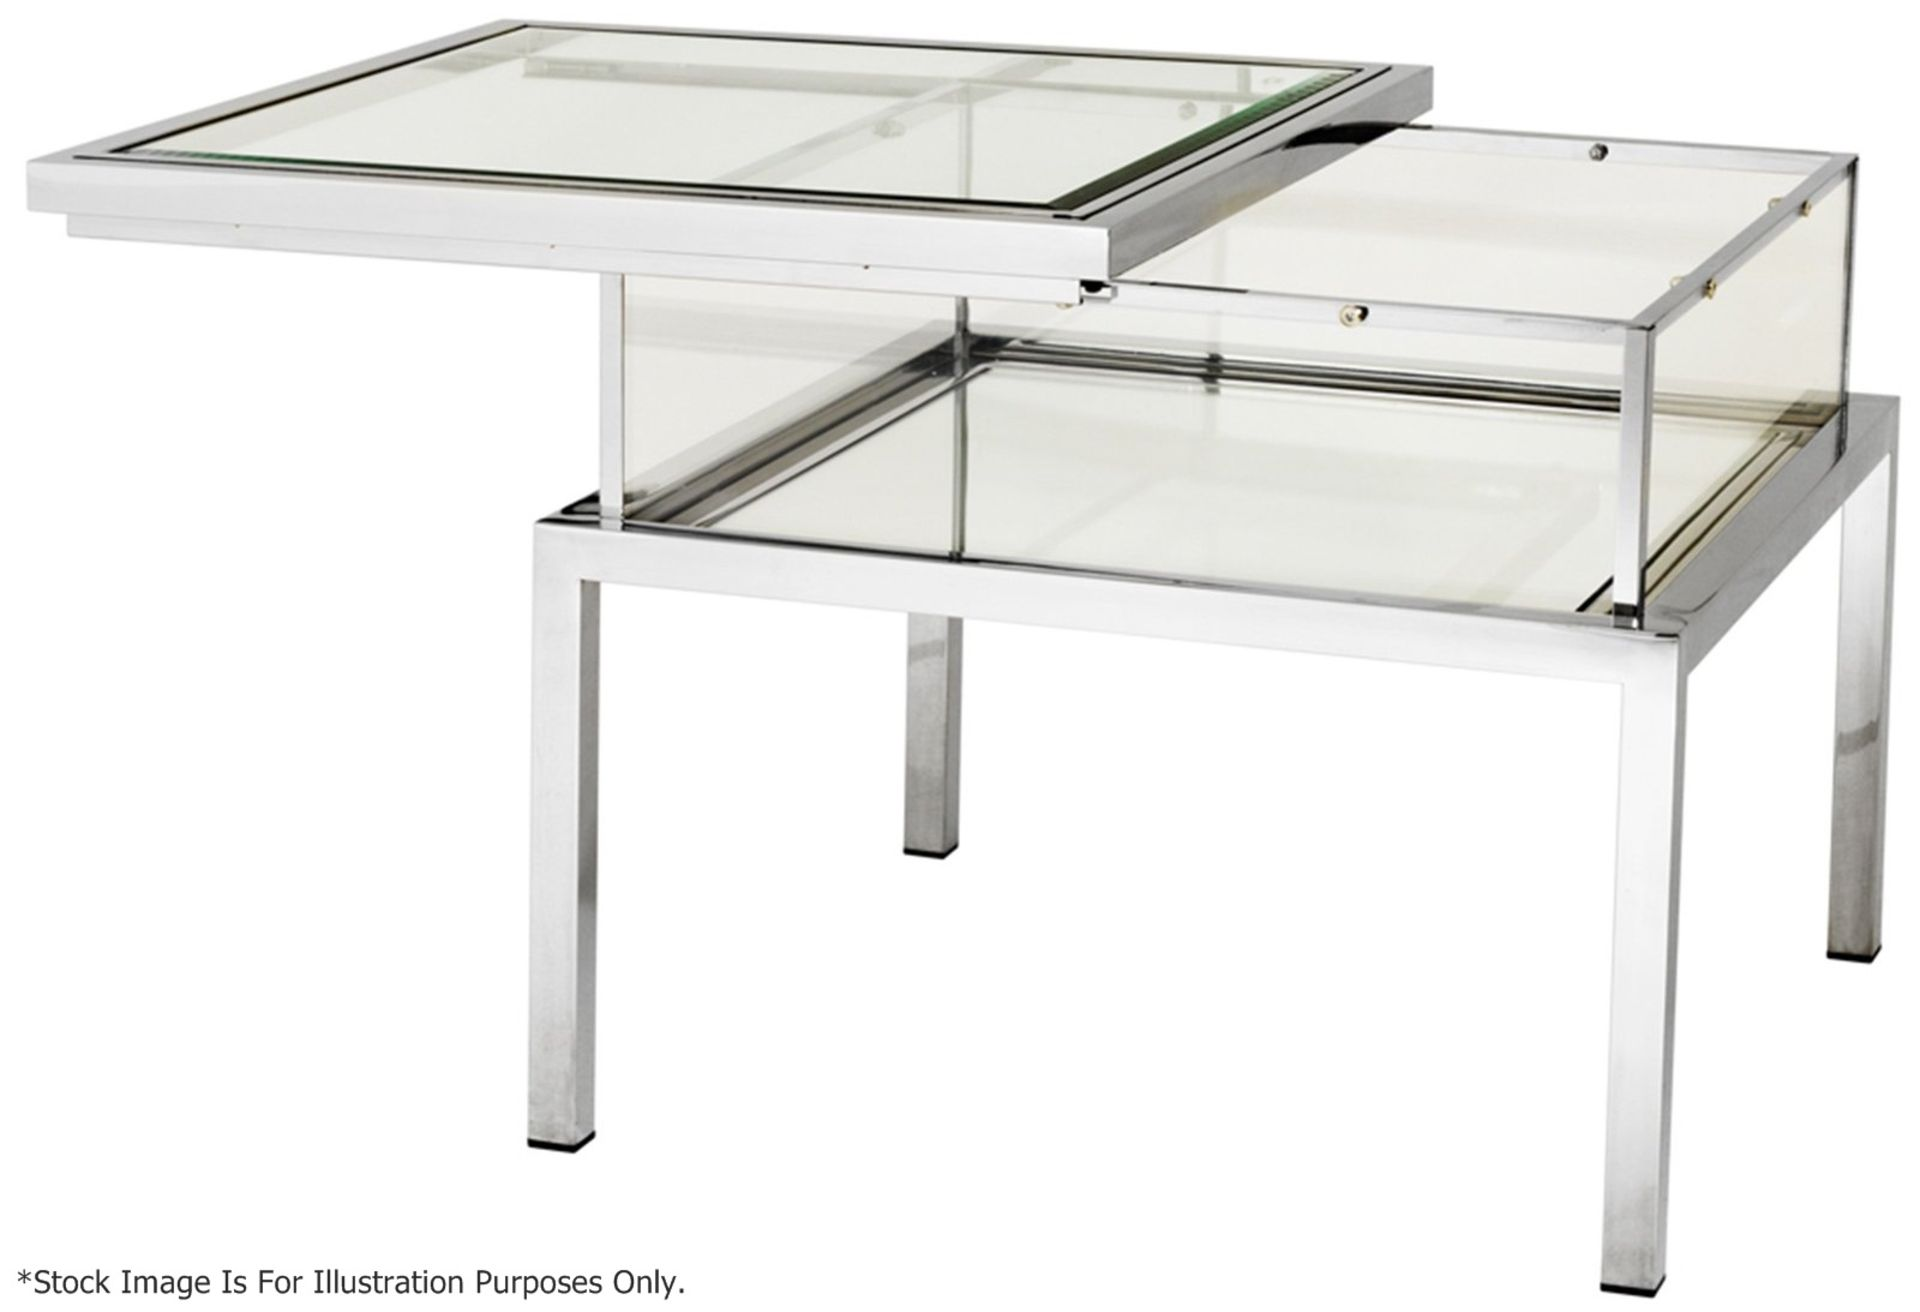 1 x EICHHOLTZ Glass Topped Side Table Harvey With A Polished Steel Frame - Original RRP £1,690